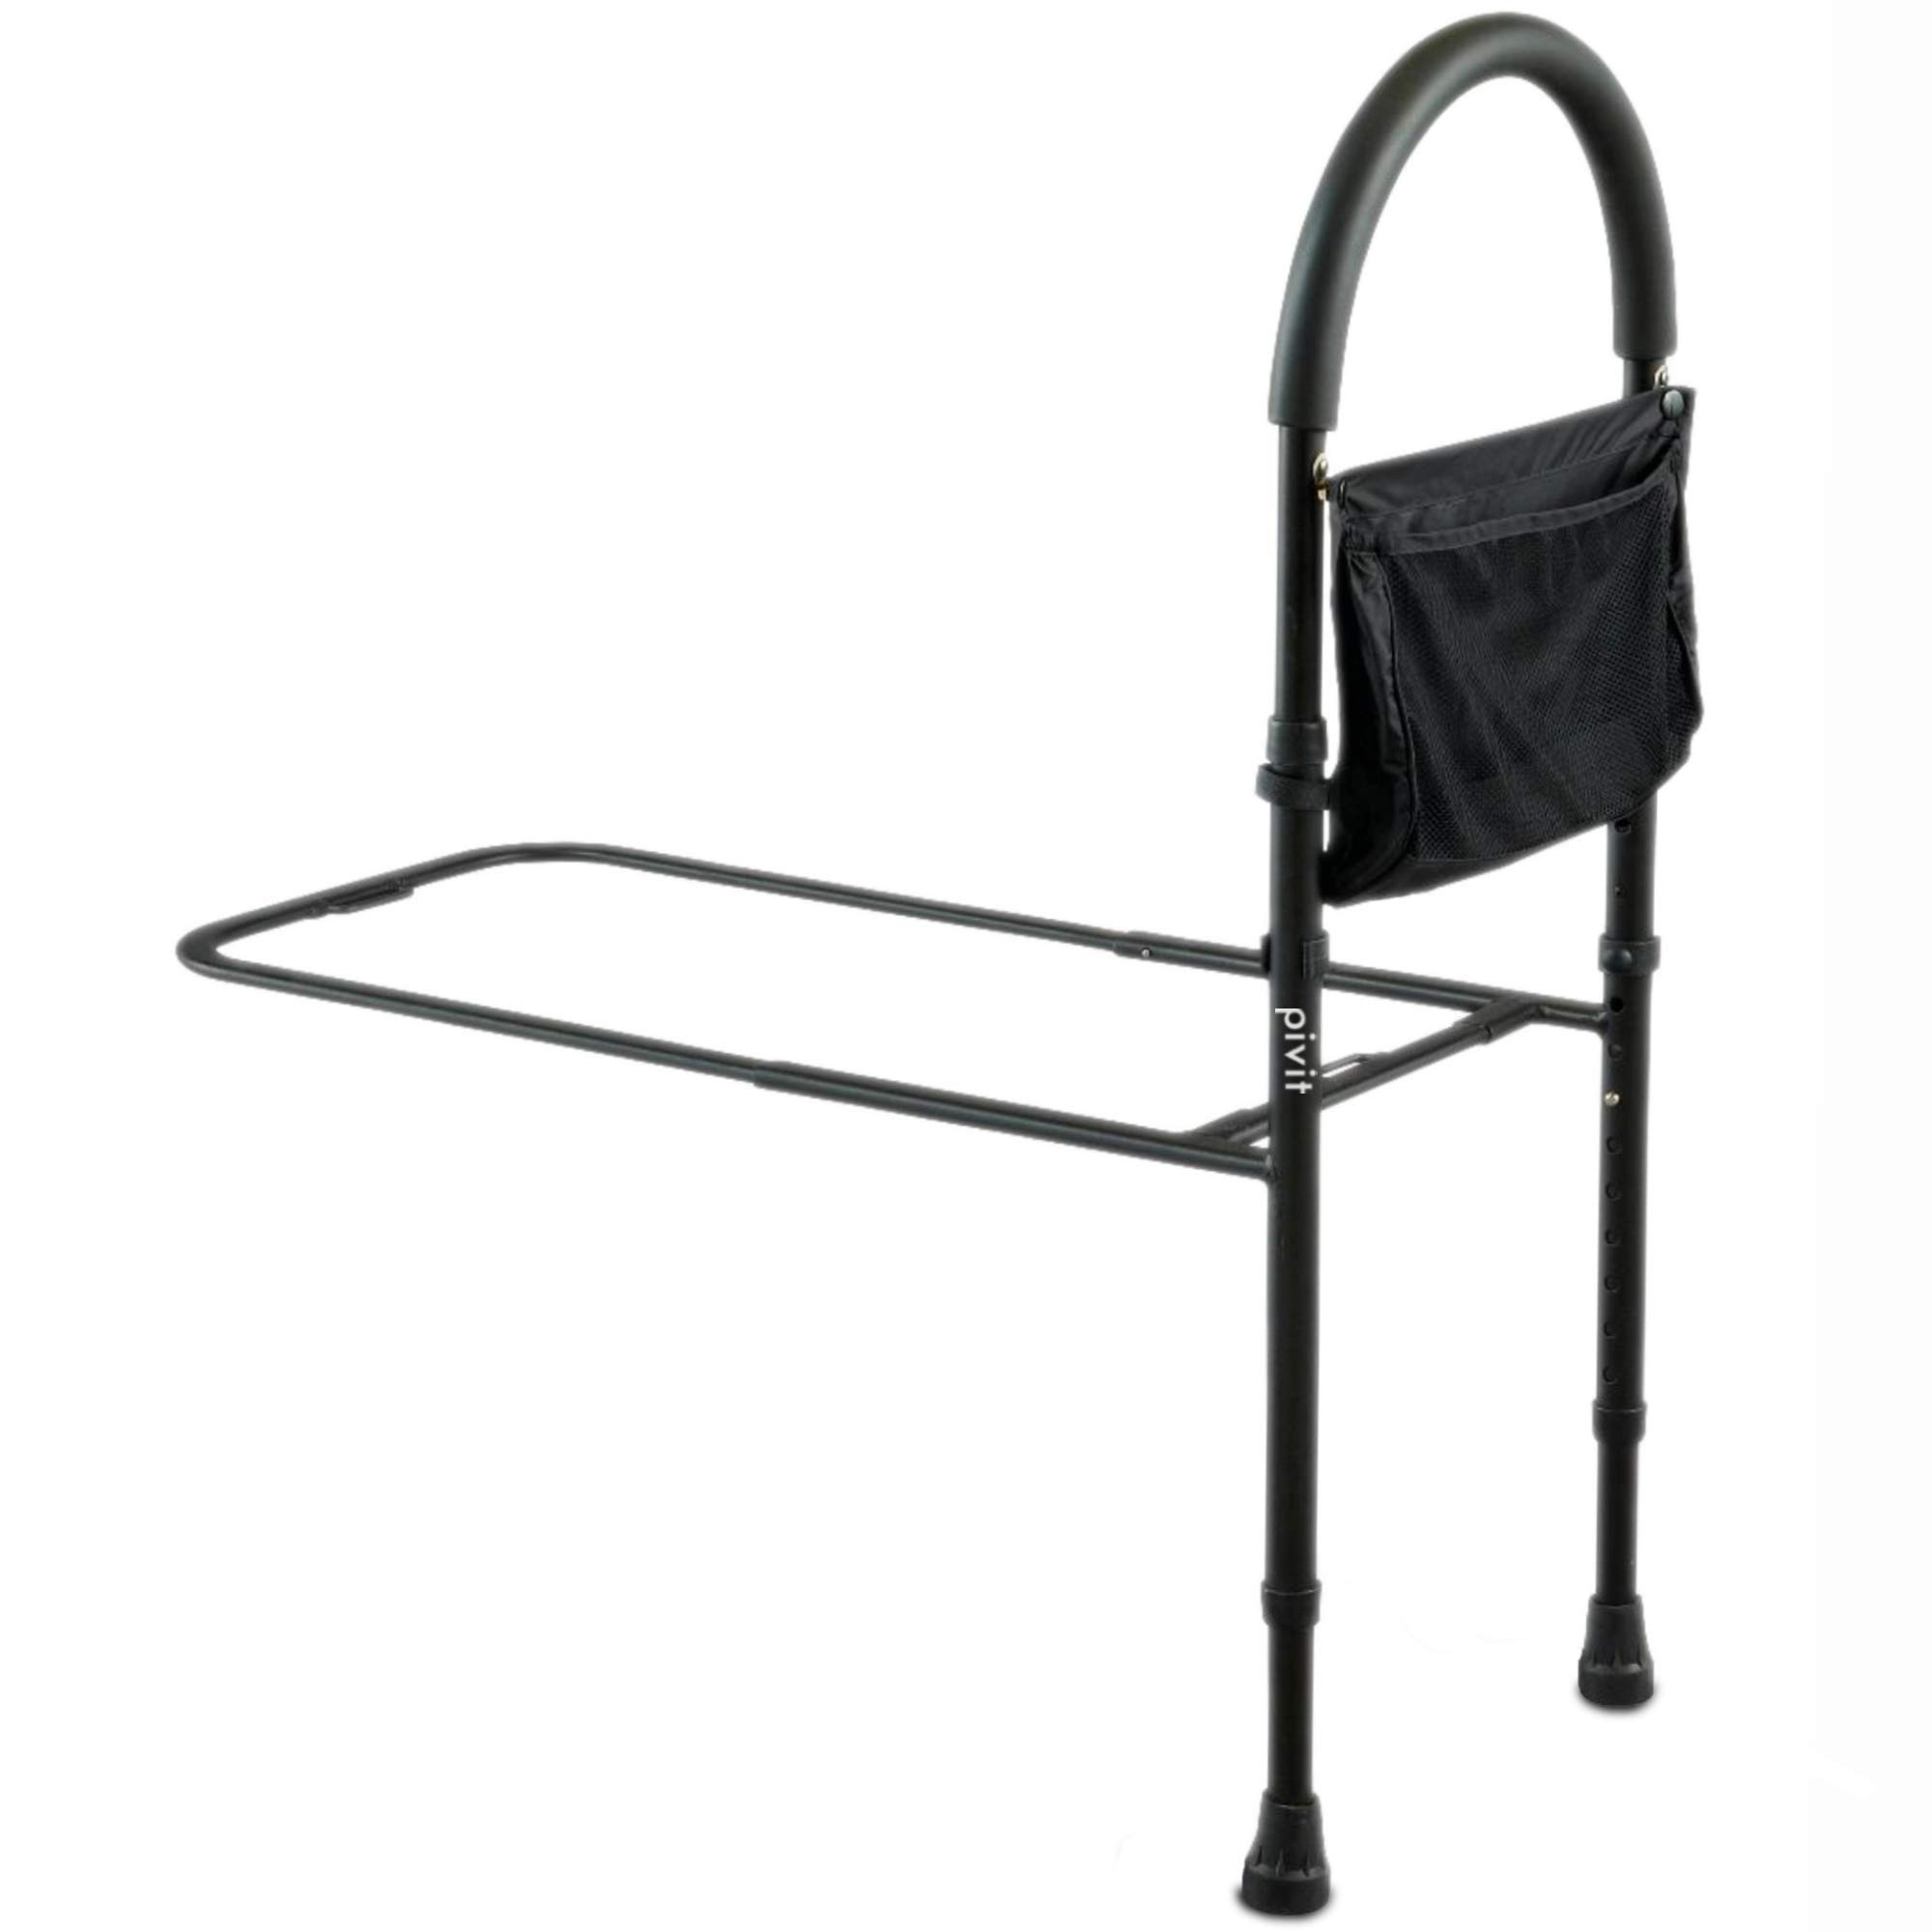 Pivit Bed Assist Safety Bar with Storage Pocket | Height Adjustable with Non-Slip Grab Handle for Getting Out of Beds | Easy to Assemble Elderly Assistance Guard Rails for Handicap, Seniors & Adults